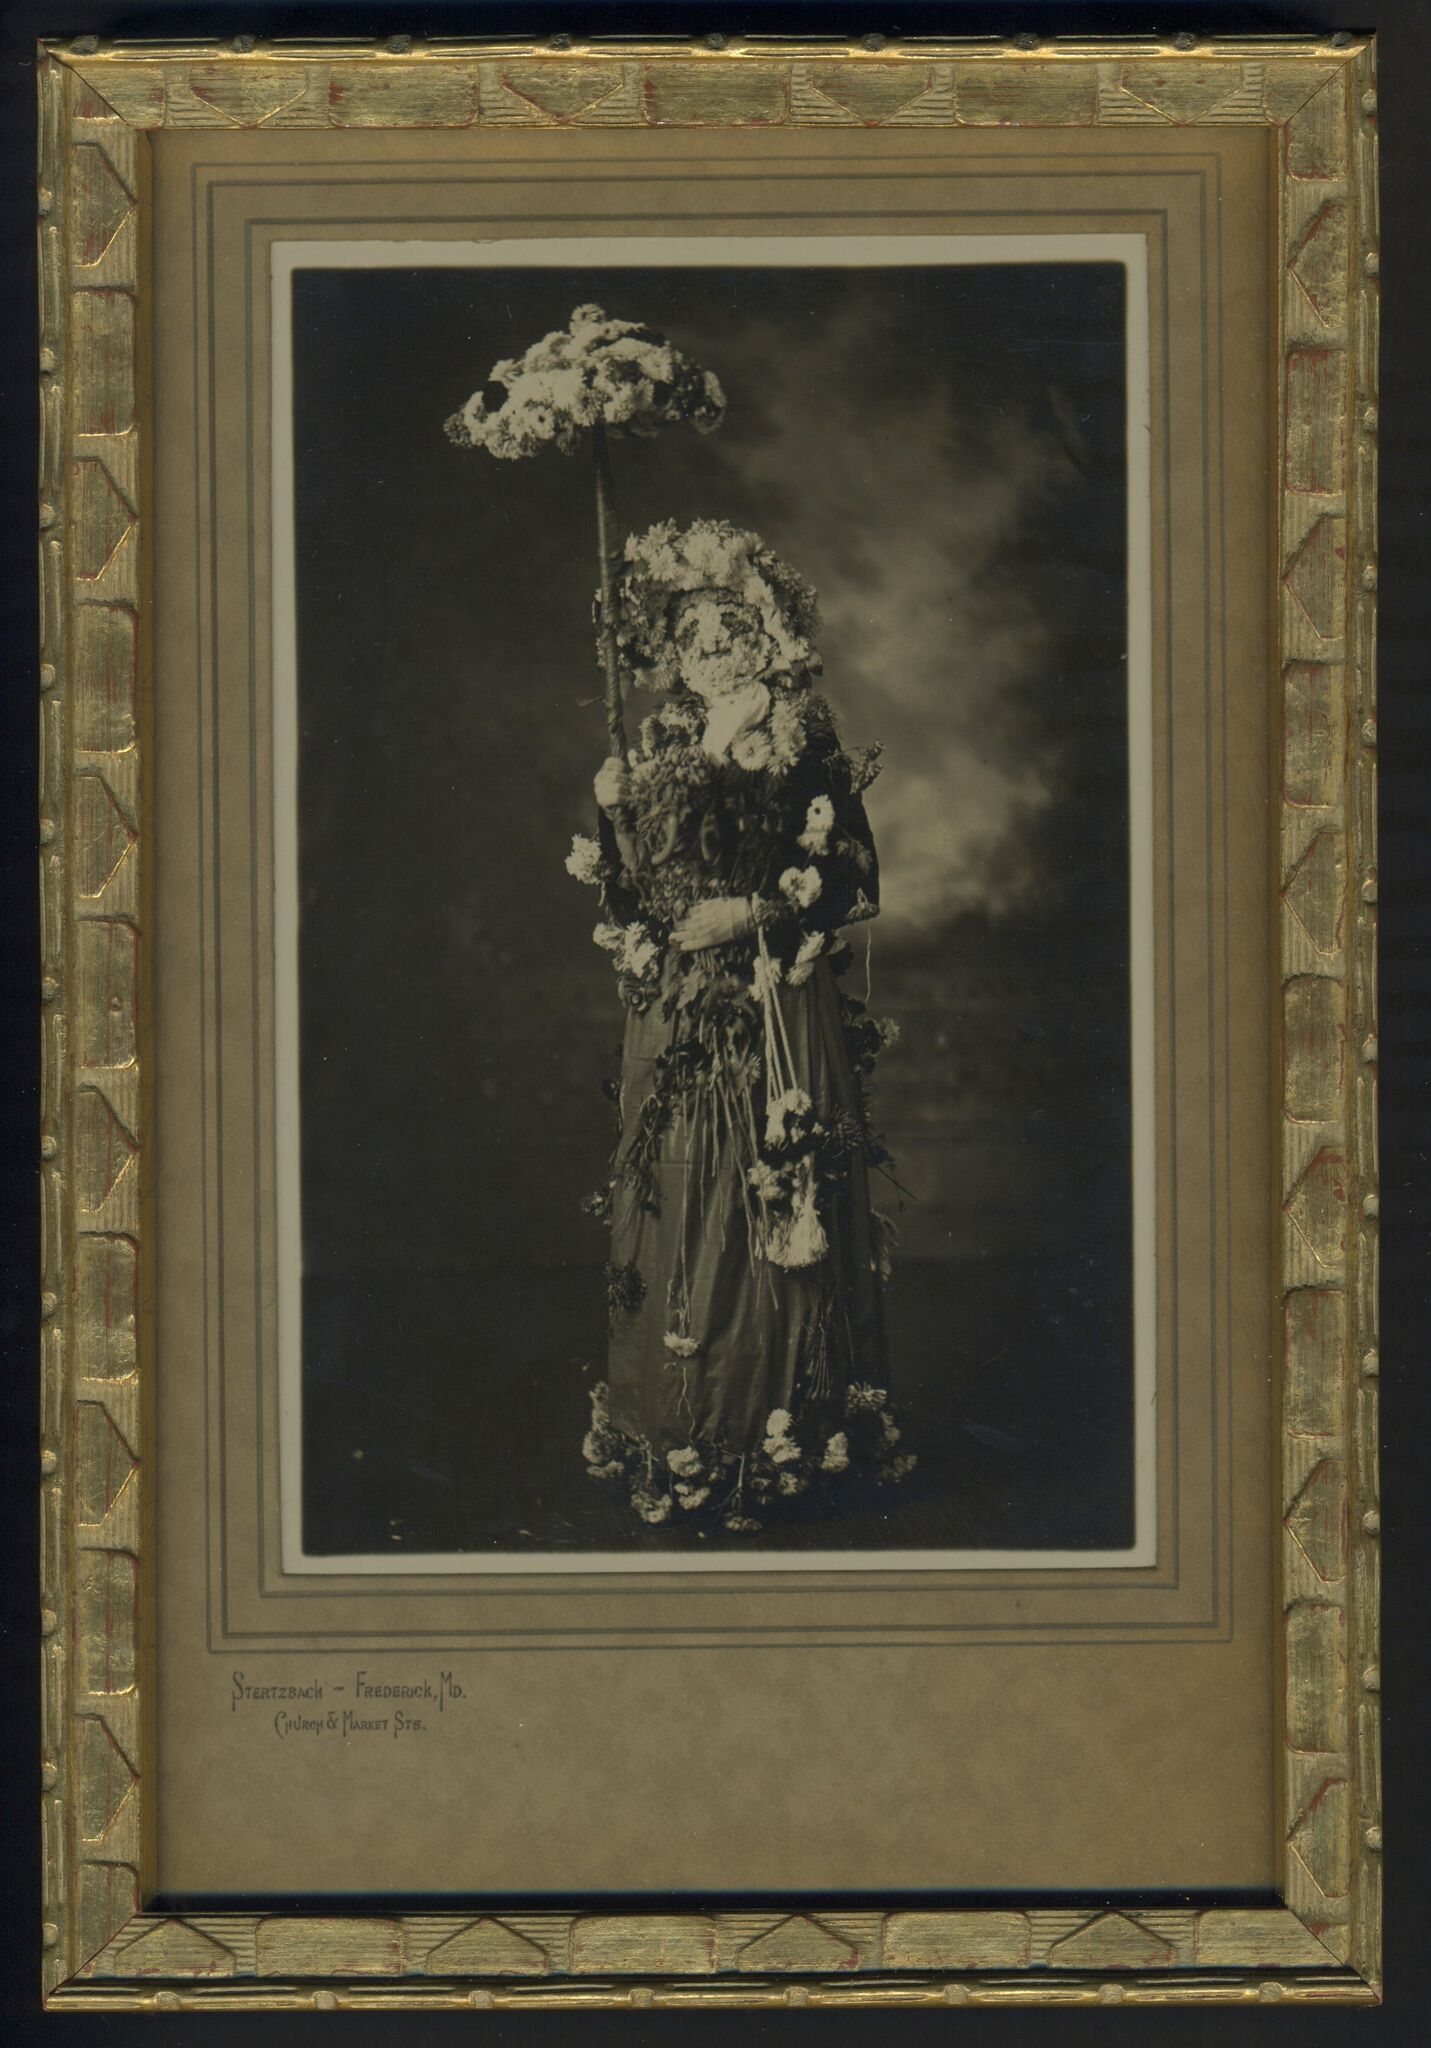 Flower Girl, ca. 1900